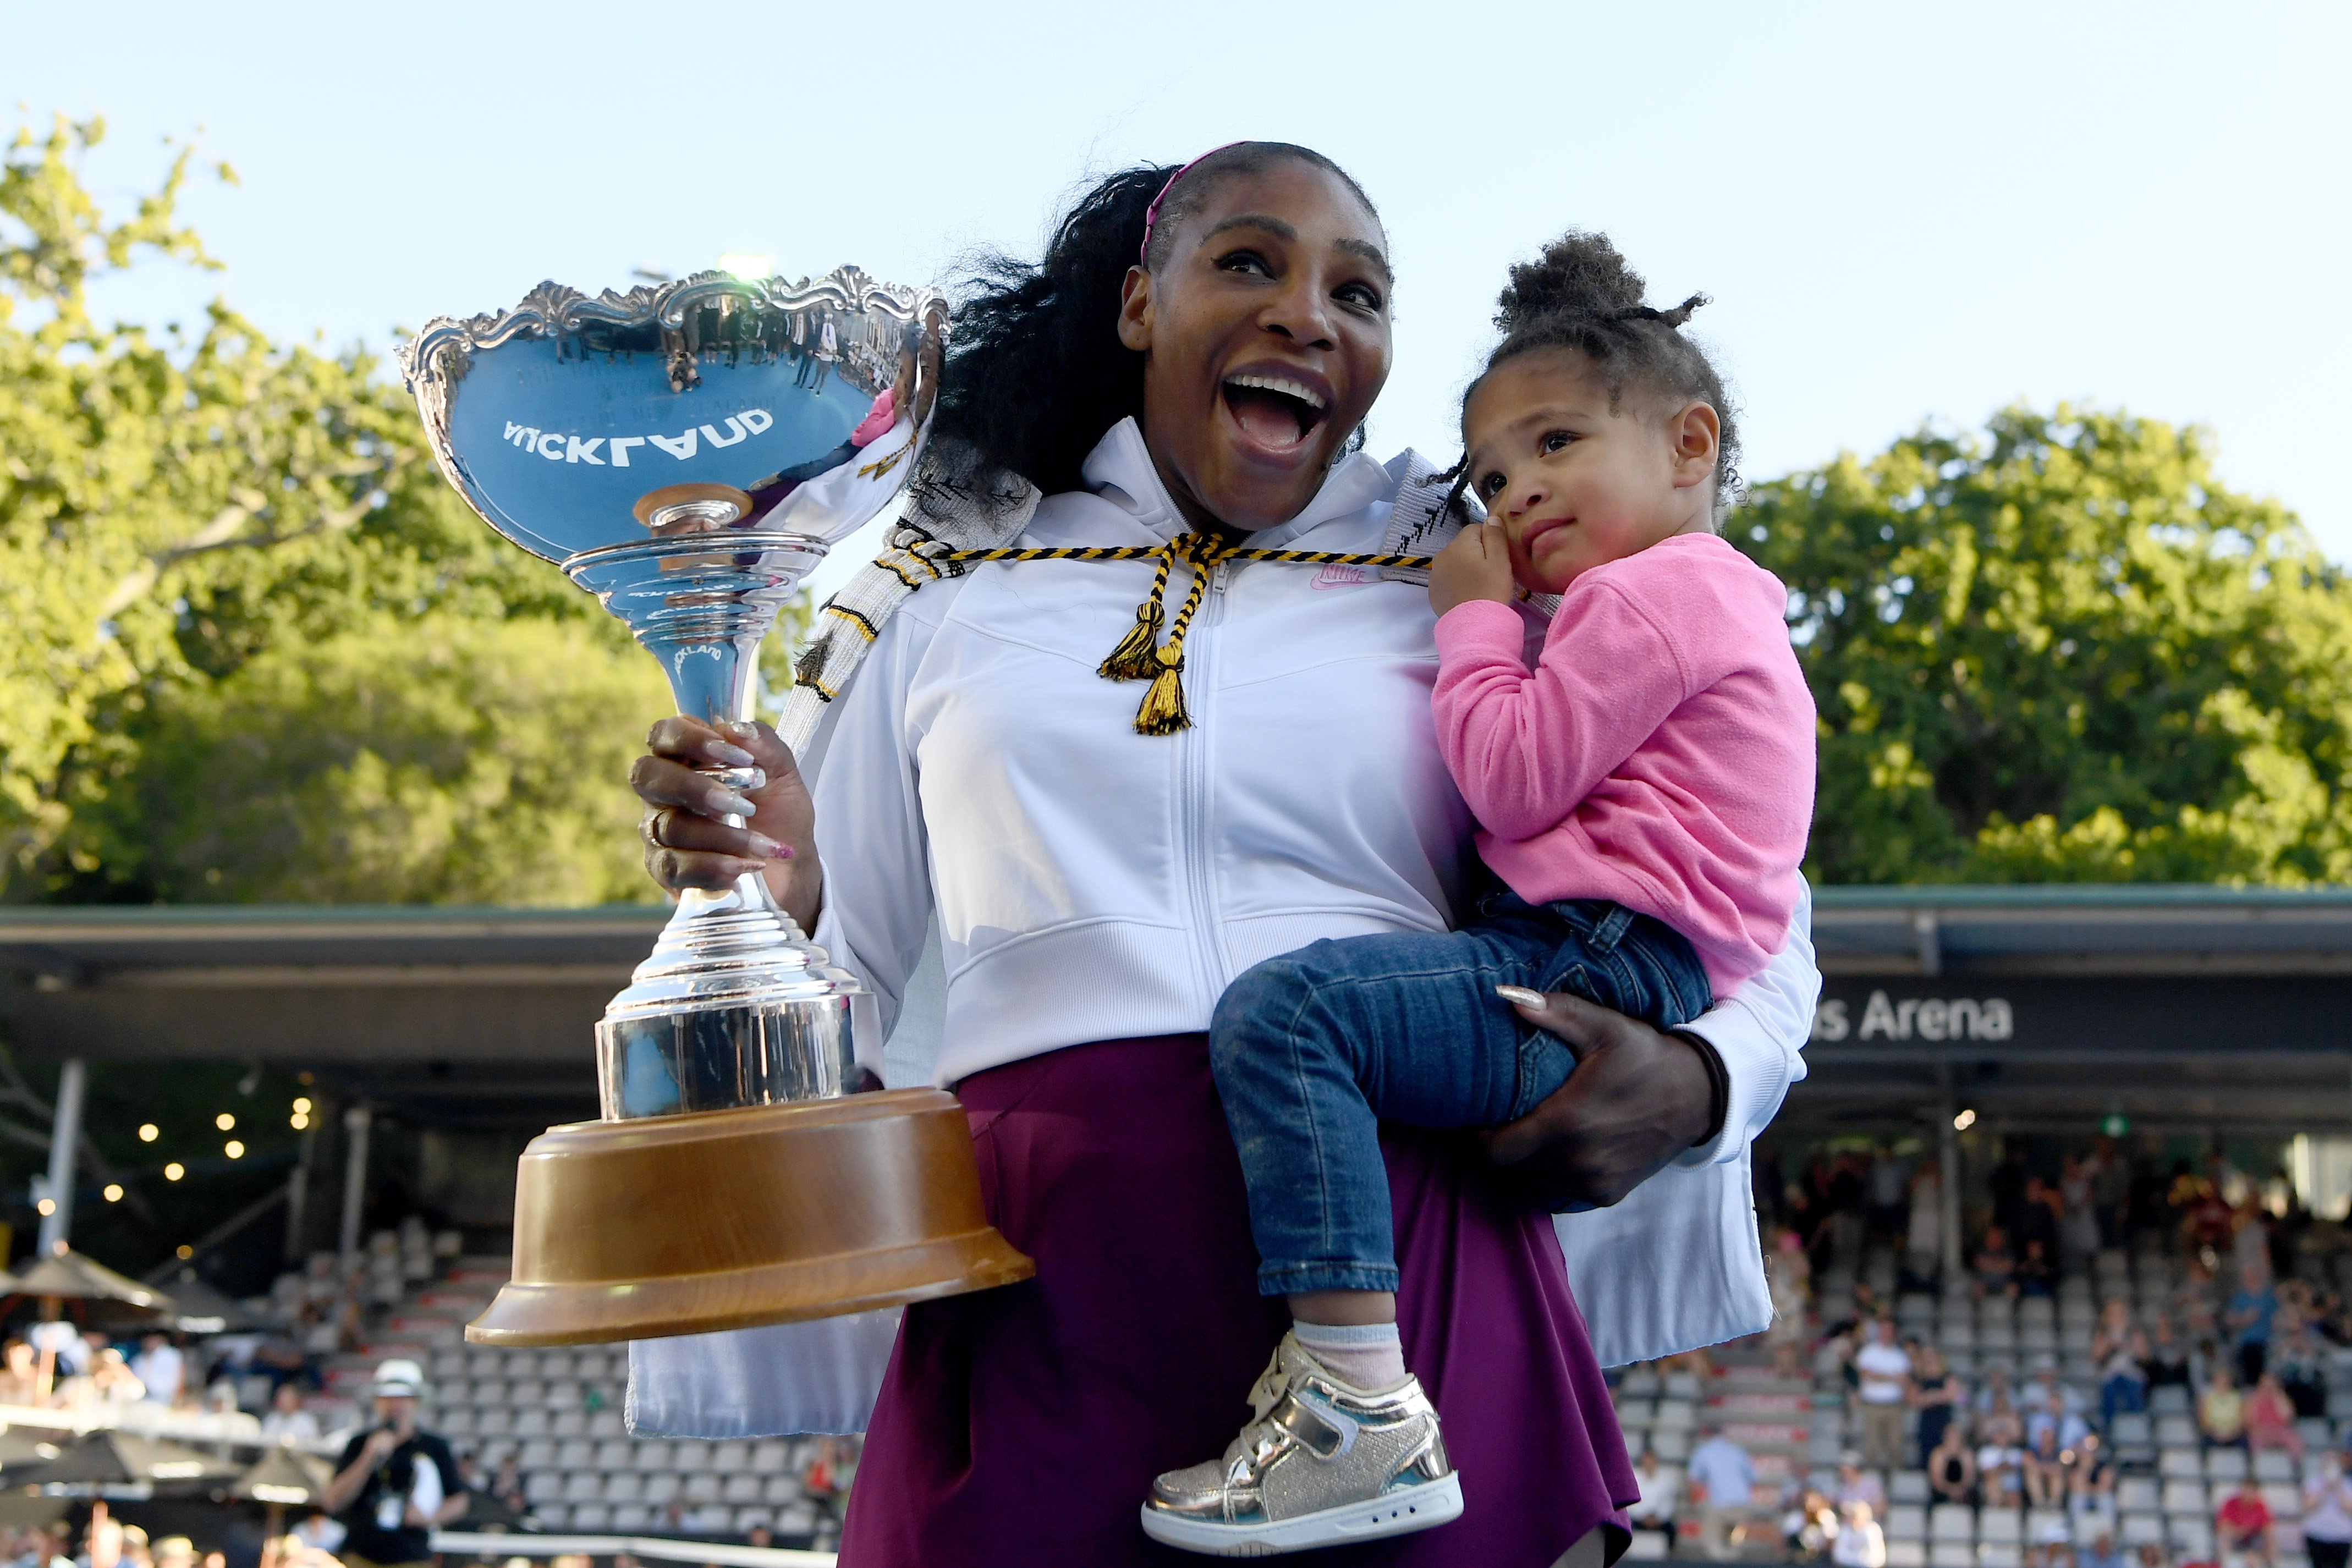 Serena Williams and her daughter Alexis Olympia after winning the final match against Jessica Pegula in 2020, New Zealand | Source: Getty Images